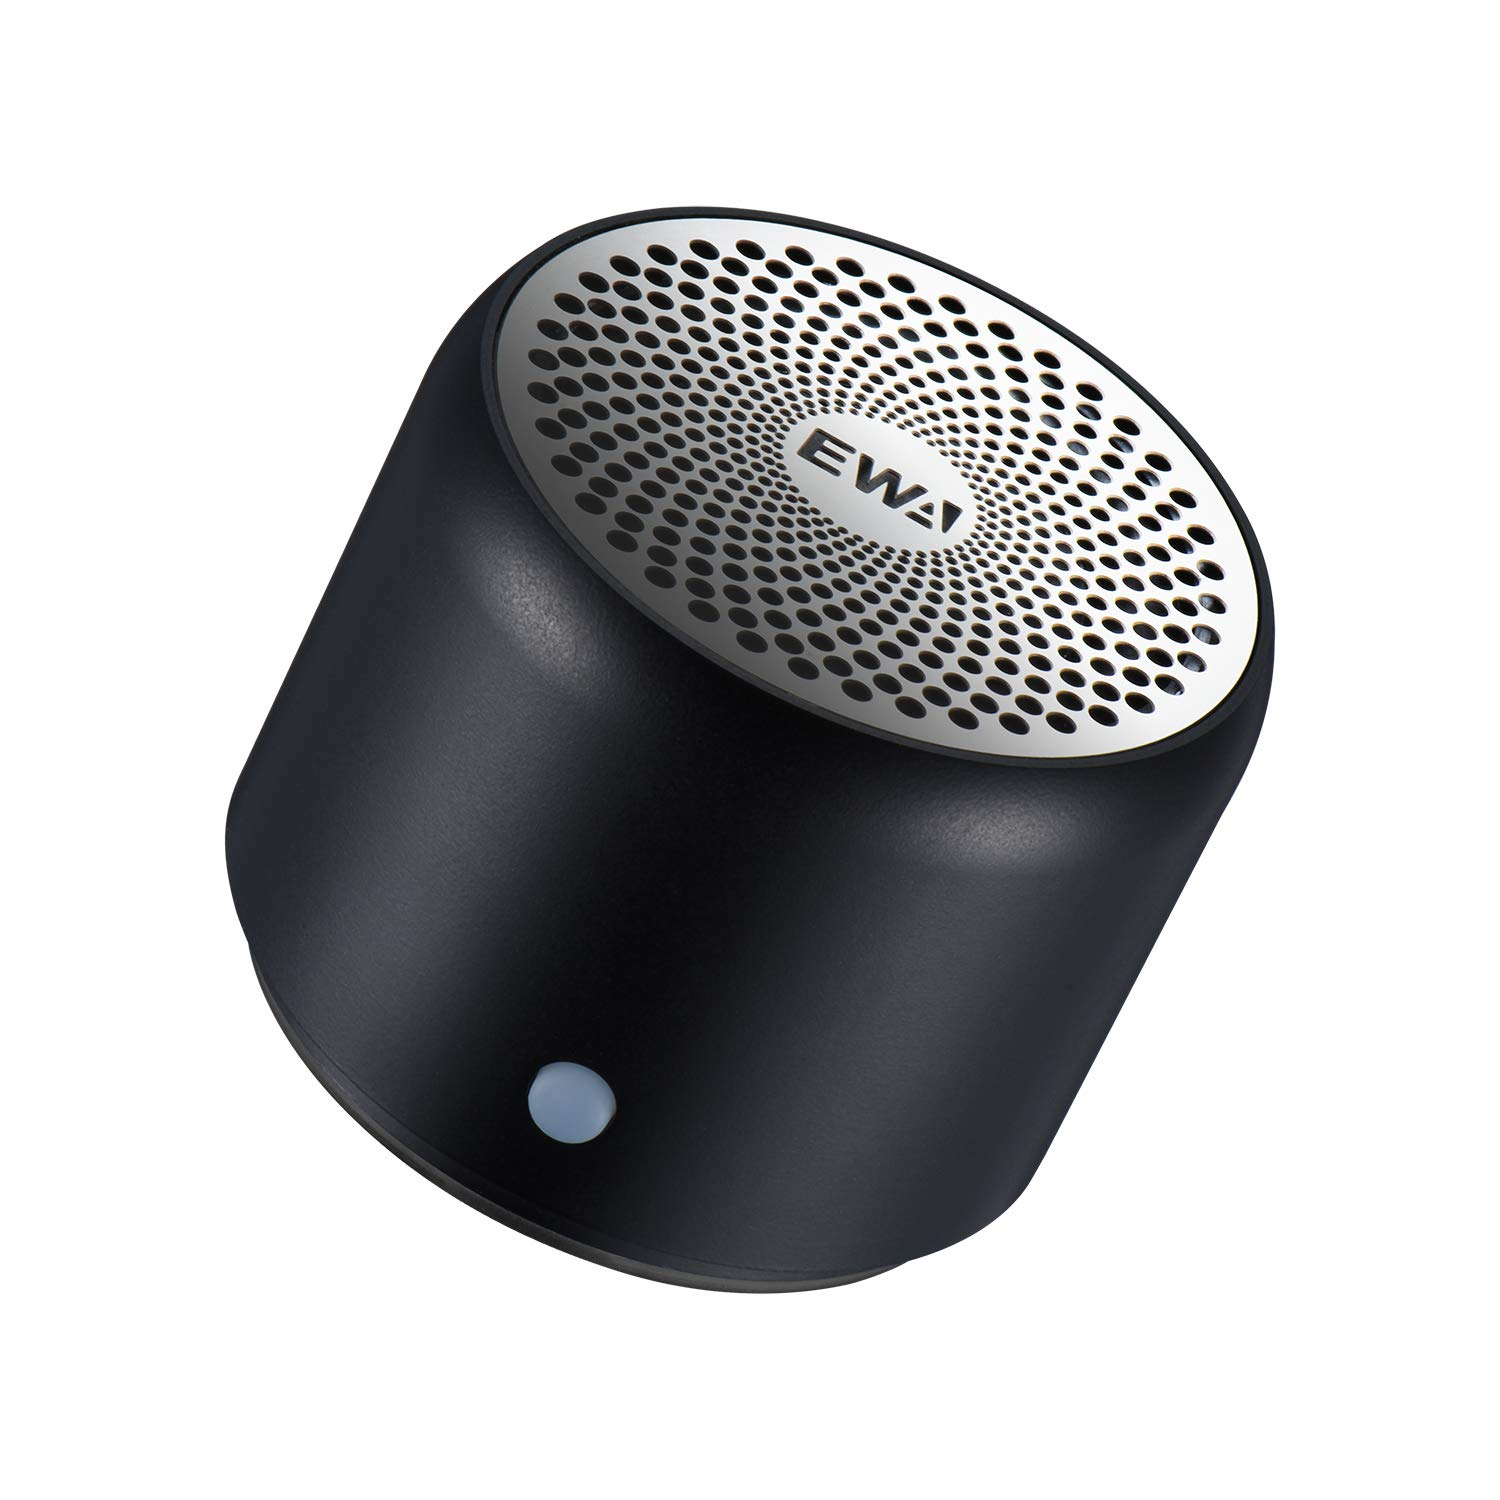 EWA A106 Portable Mini Bluetooth Speaker, Enhanced Bass and High Definition Sound, Portable Design, for iPhone, iPad,Nexus,Laptops and More